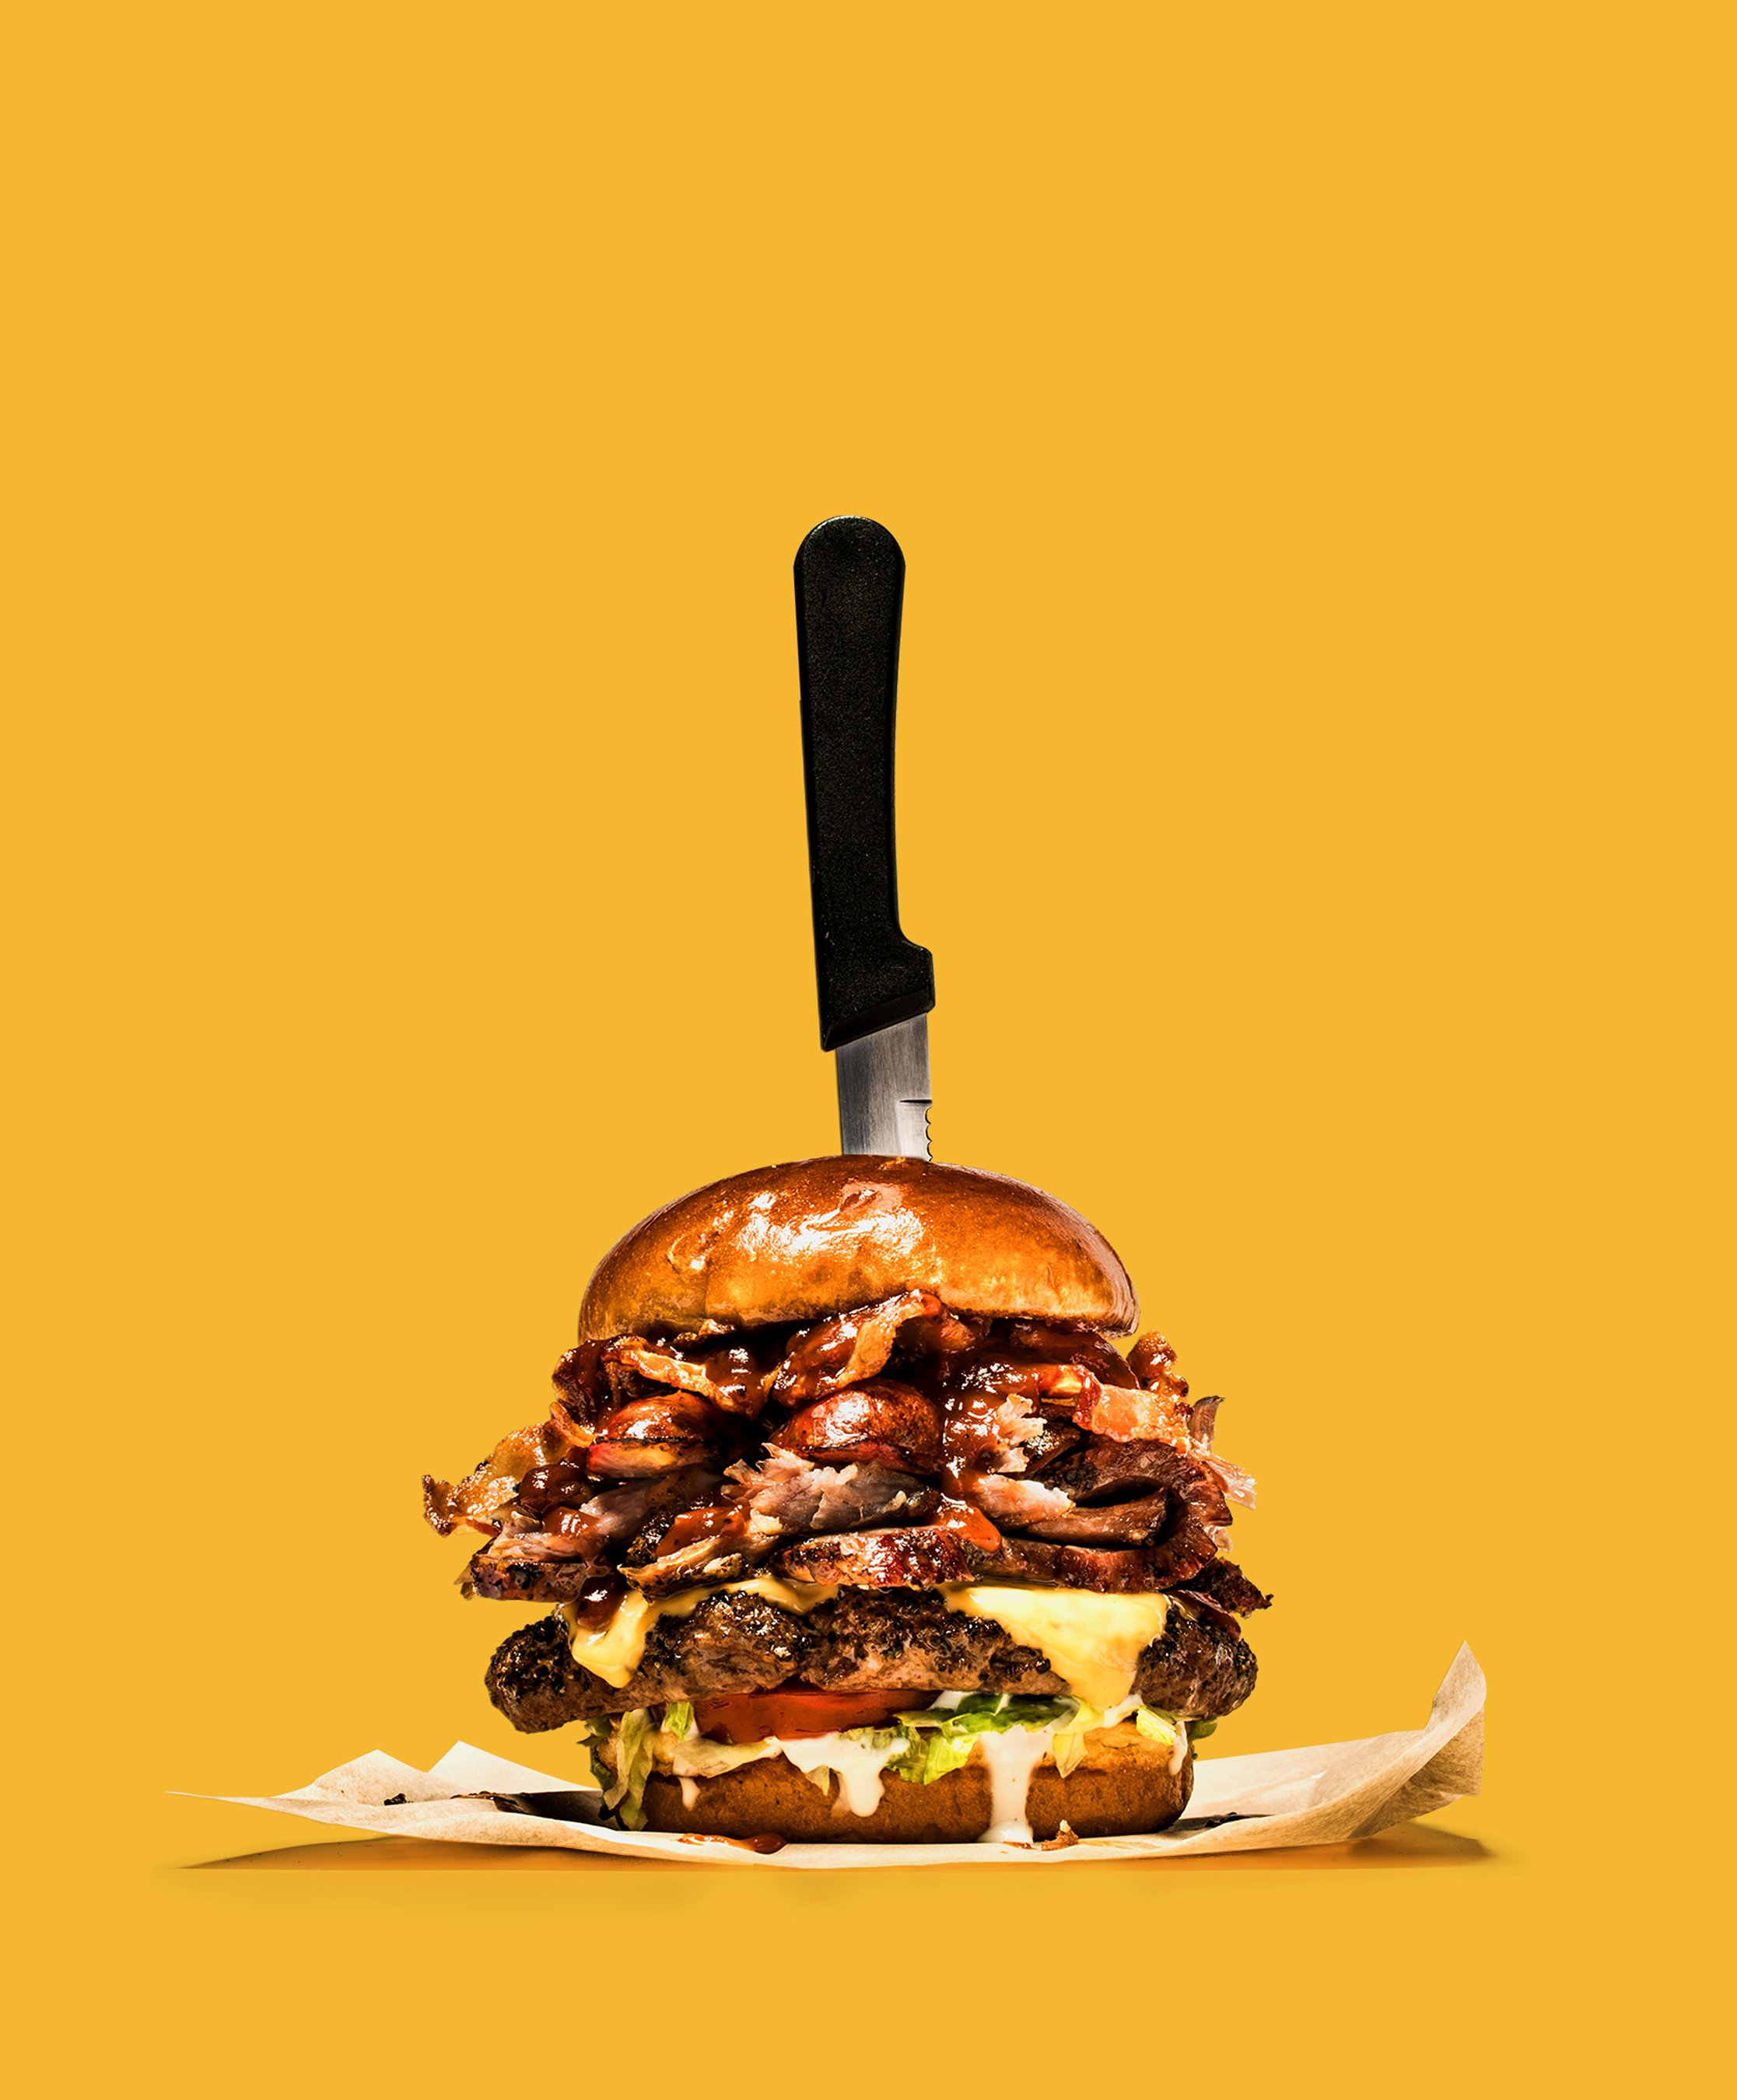 Unhinge your jaw because standing at nearly ½ foot tall, The Boss burger is now available at Chili's restaurants nationwide.